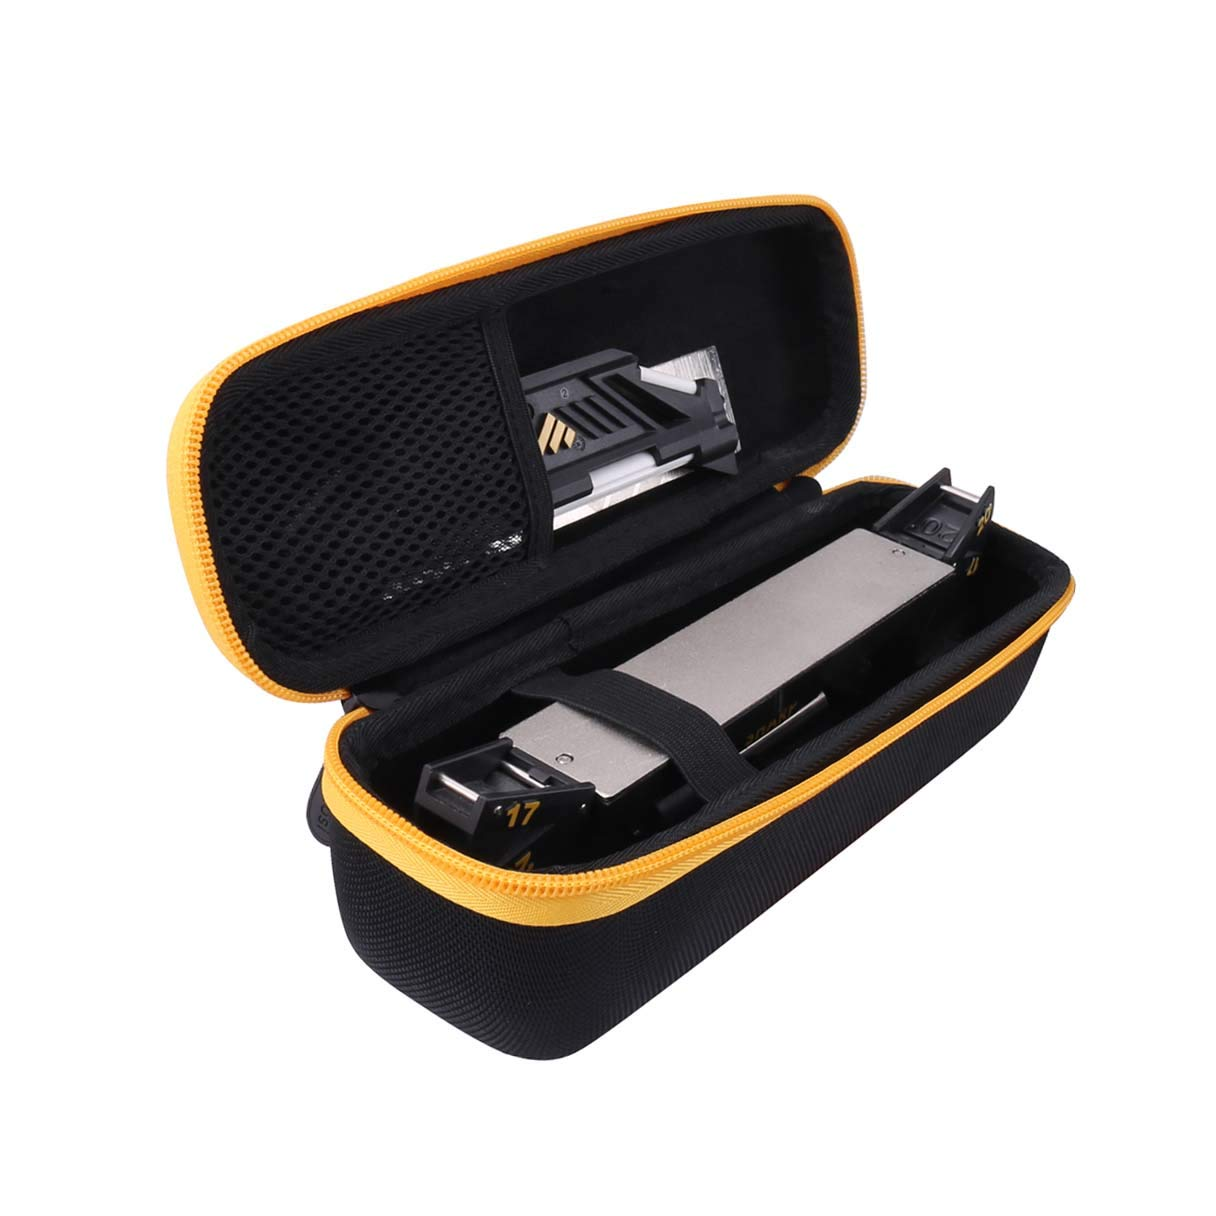 Aenllosi Hard Carrying Case for Work Sharp Guided Sharpening System